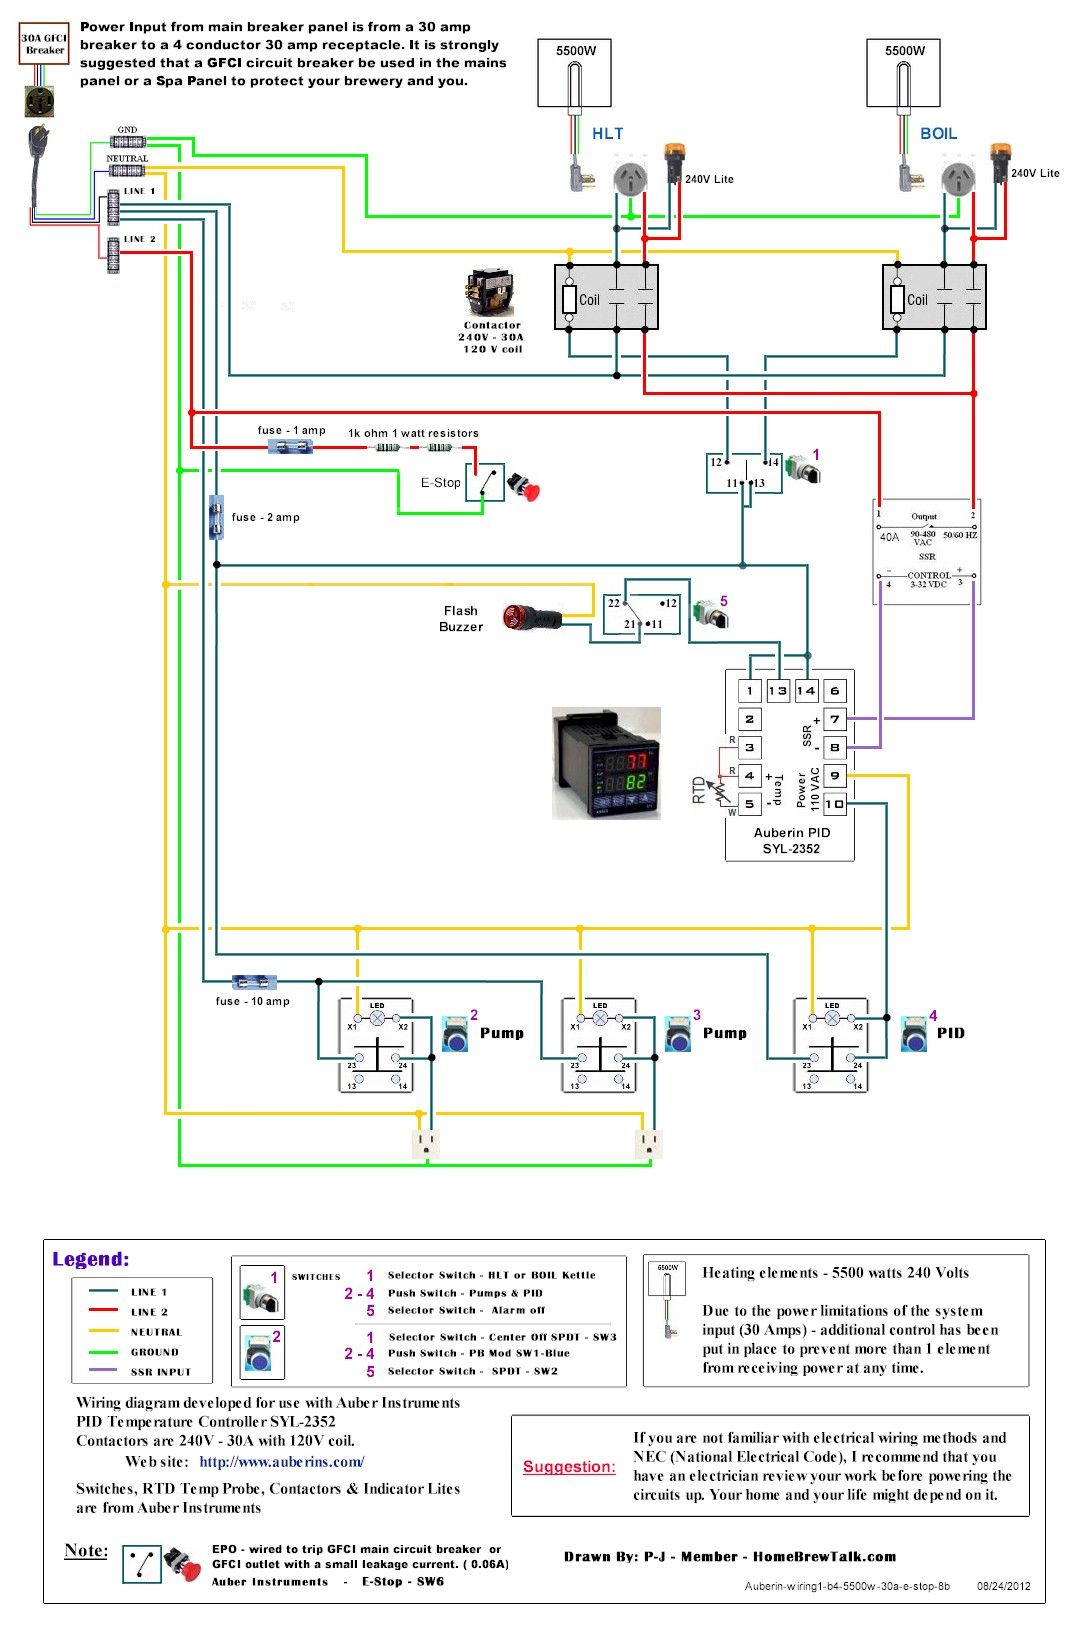 220V 30A Wiring Diagram Help - Page 2 - Home Brew Forums | *brewery - 220 Wiring Diagram